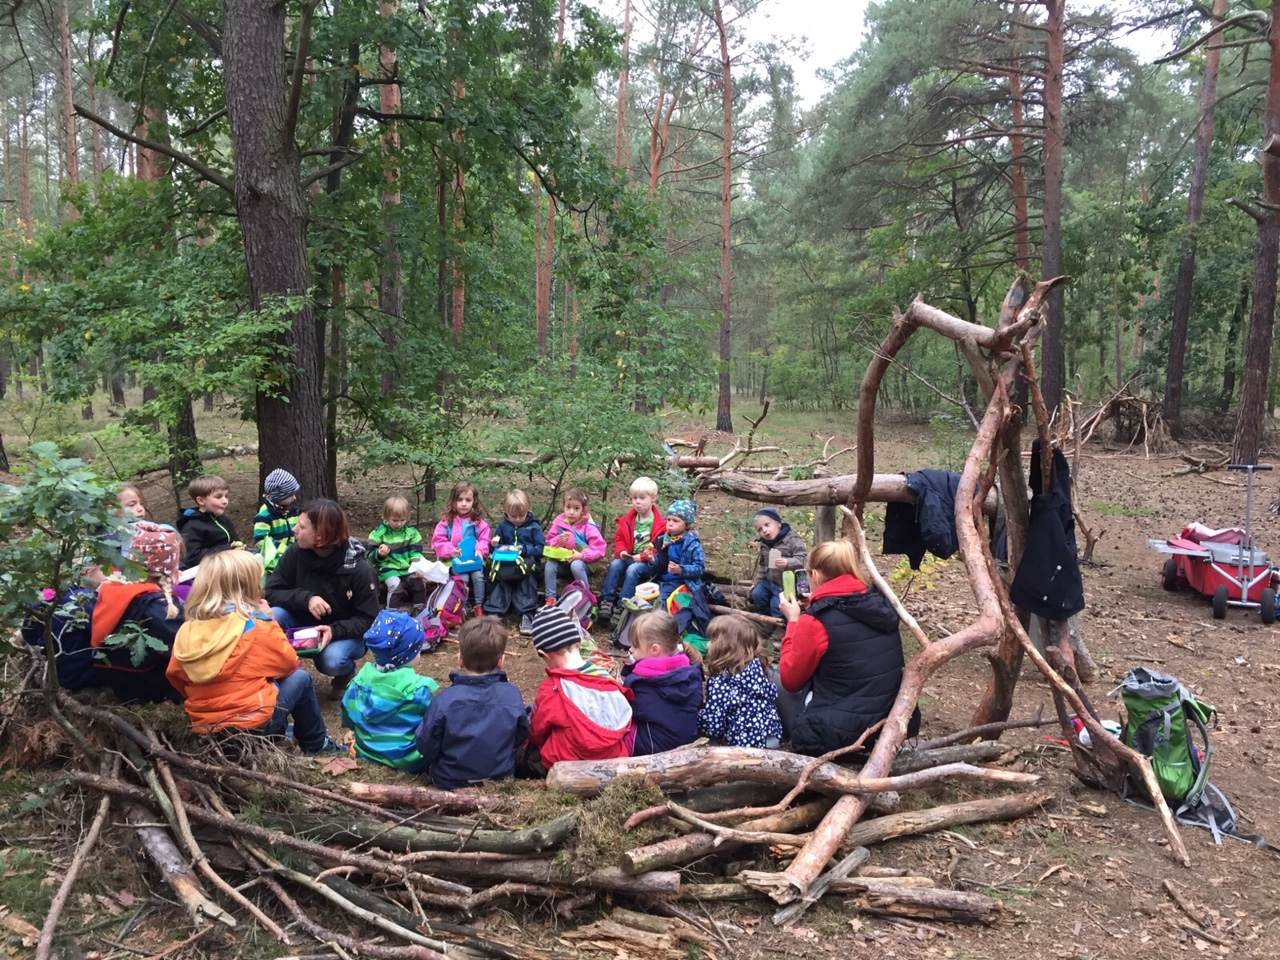 waldkindergarten gathered